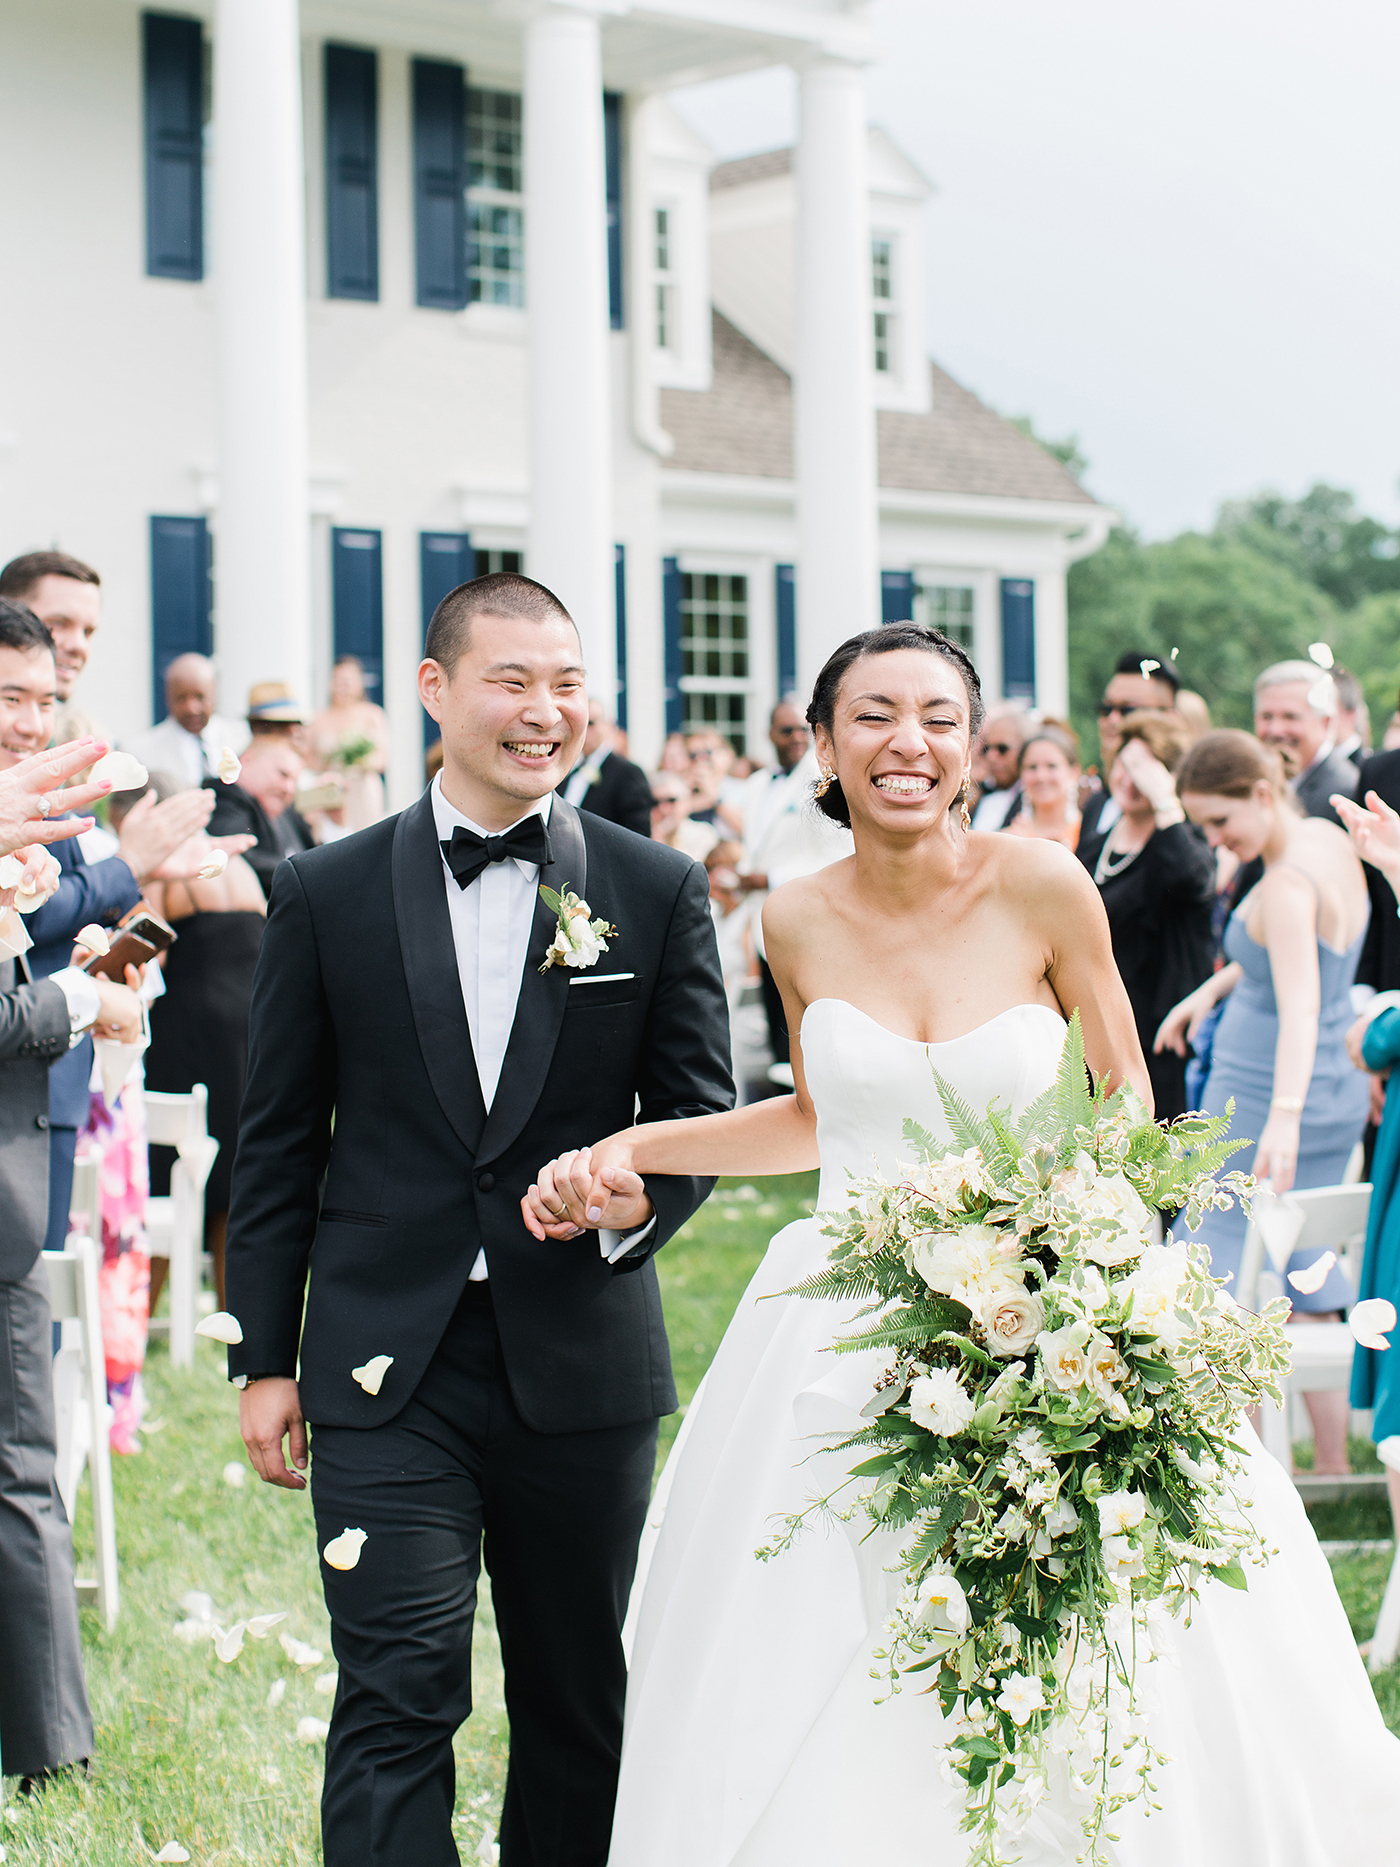 A Joyful Backyard Wedding at the Bride's Family Home